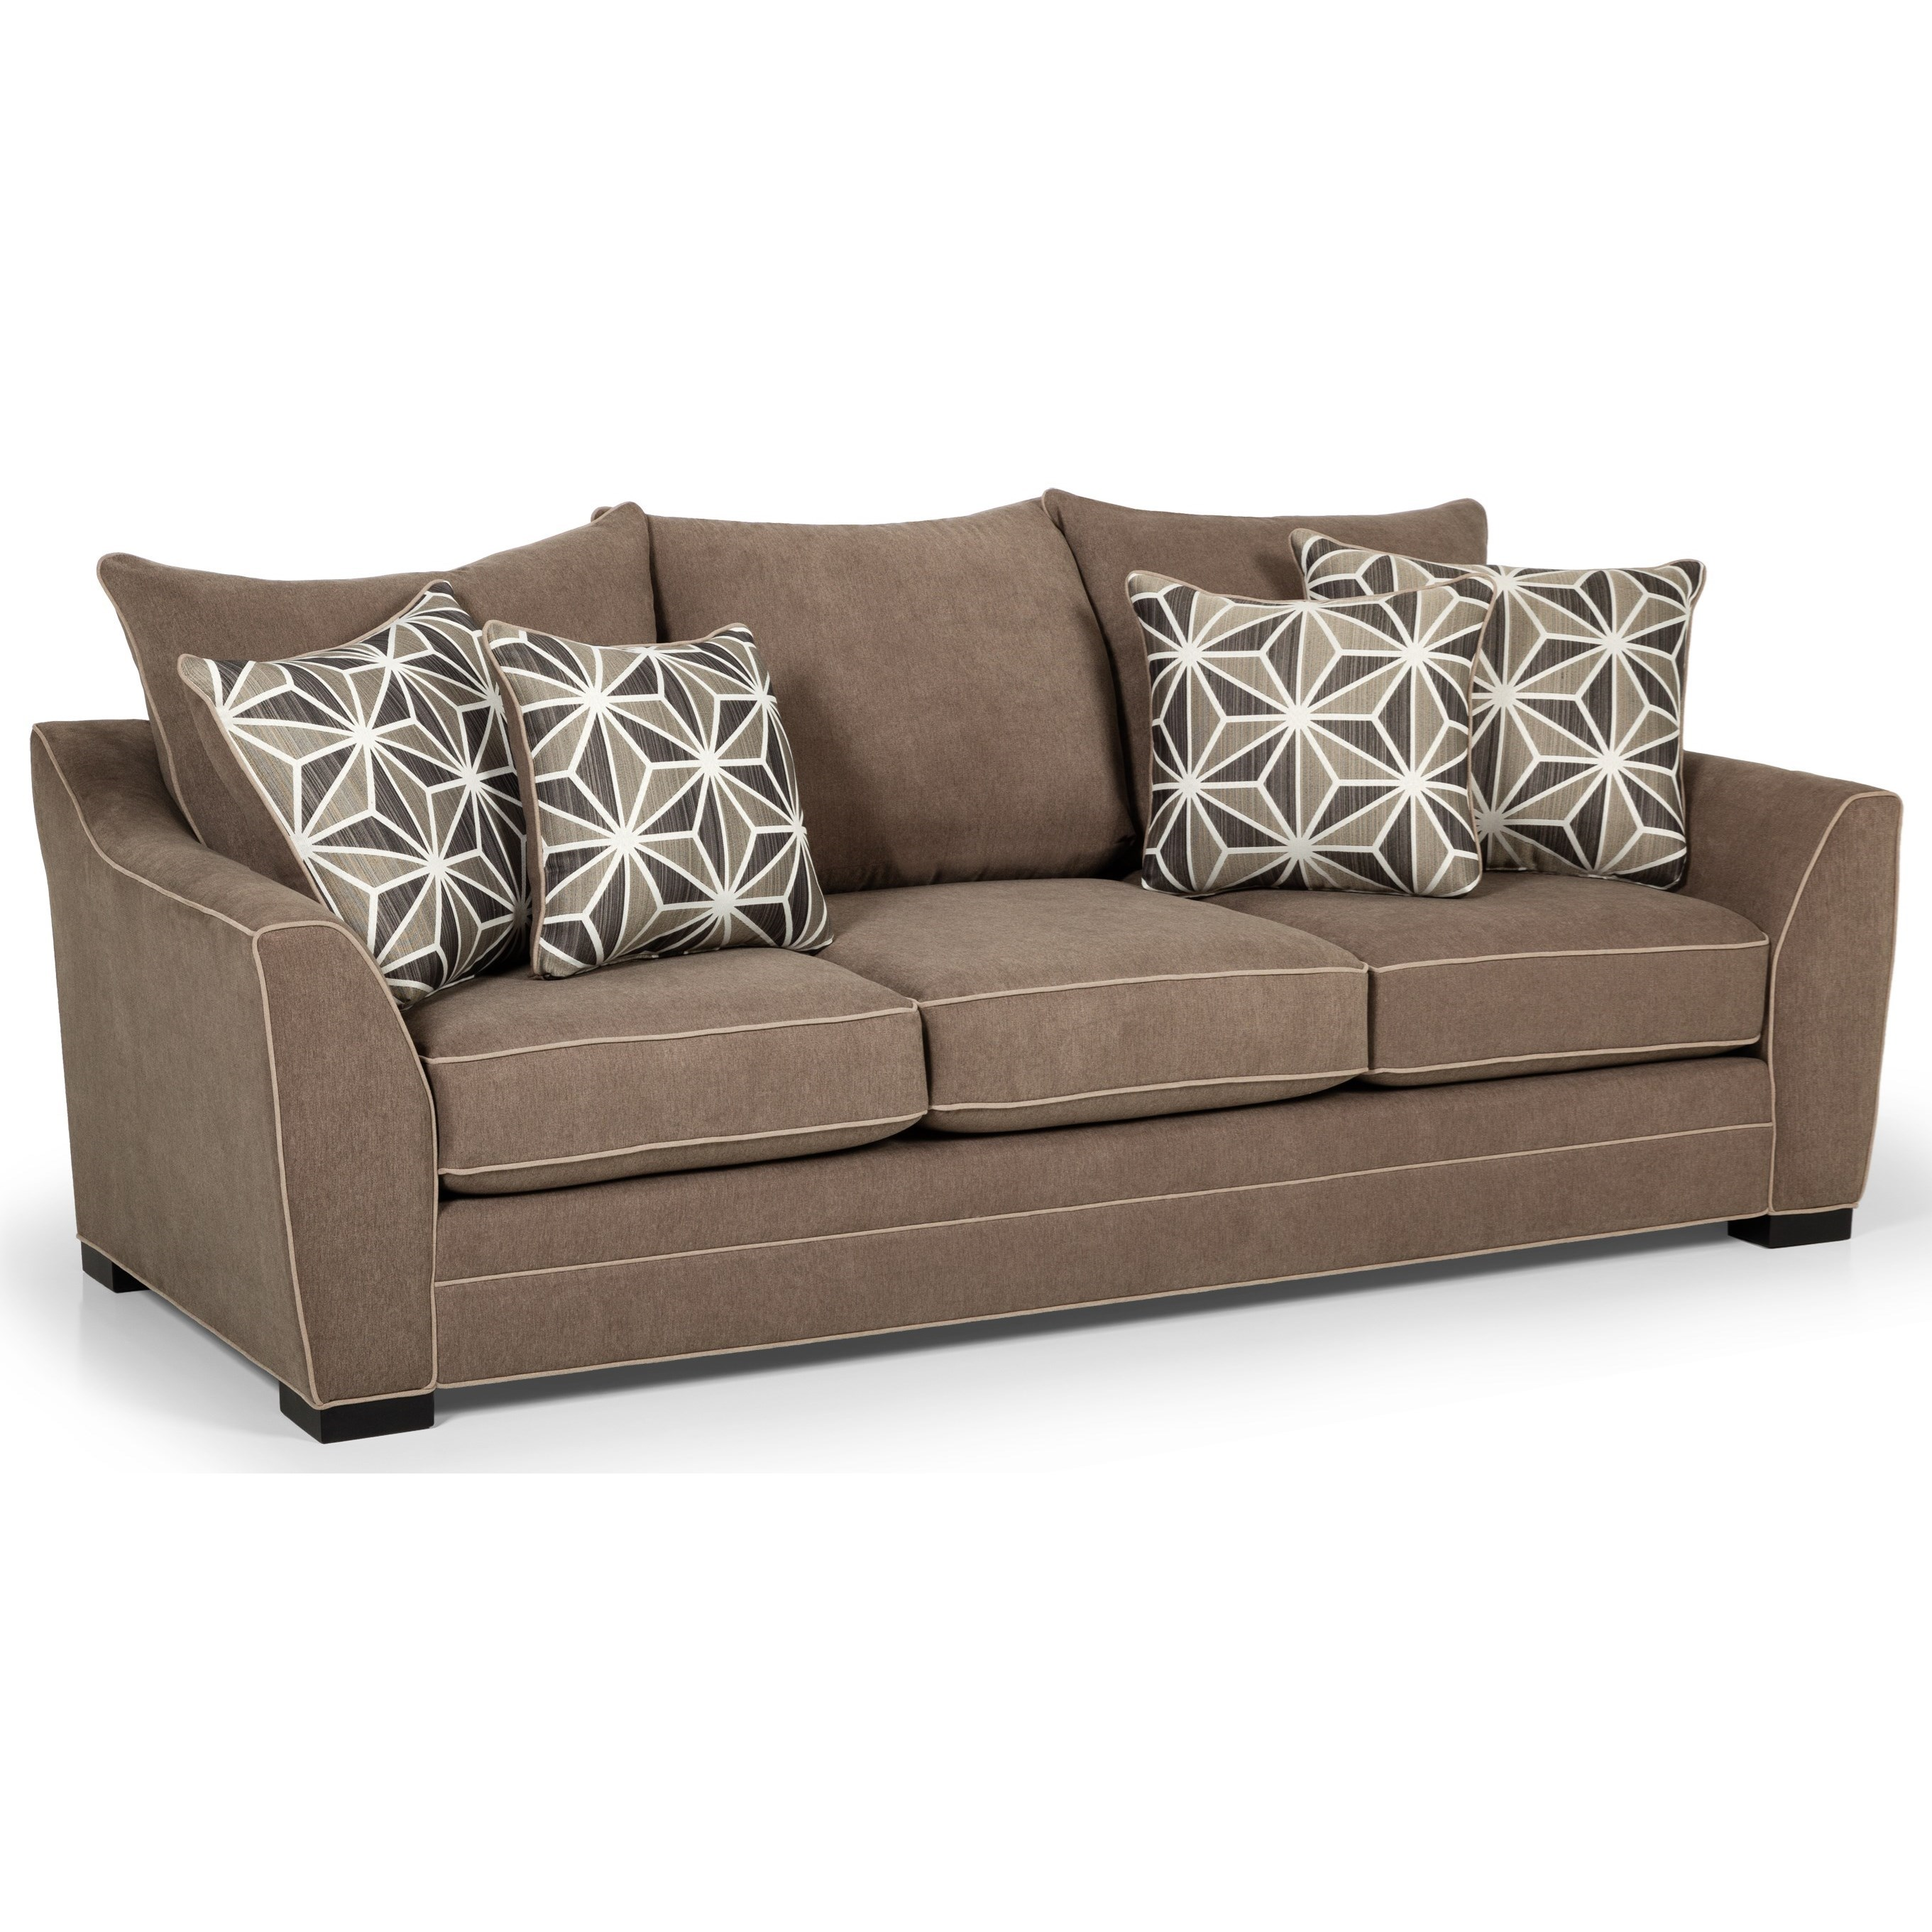 378 Sofa by Stanton at Wilson's Furniture